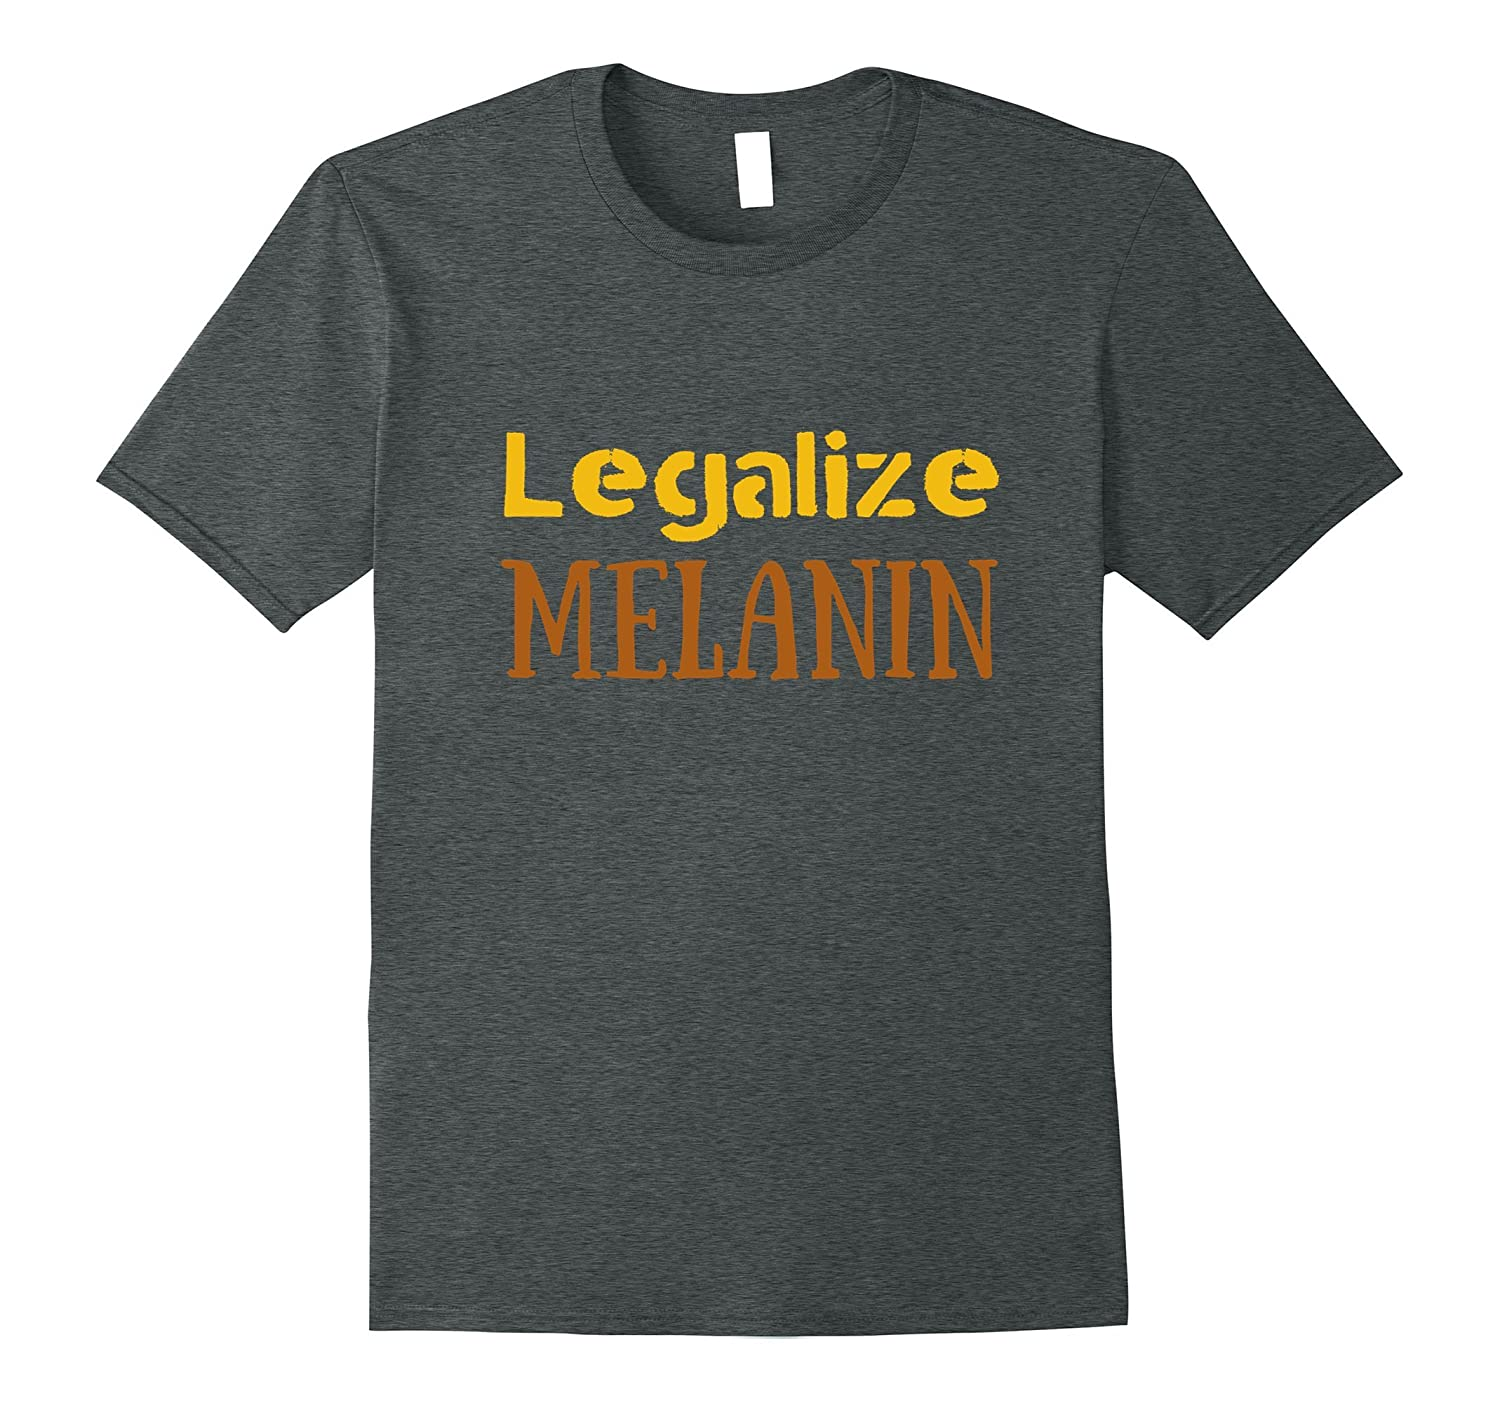 Legalize Melanin T-Shirt Black Afro Girl-CD